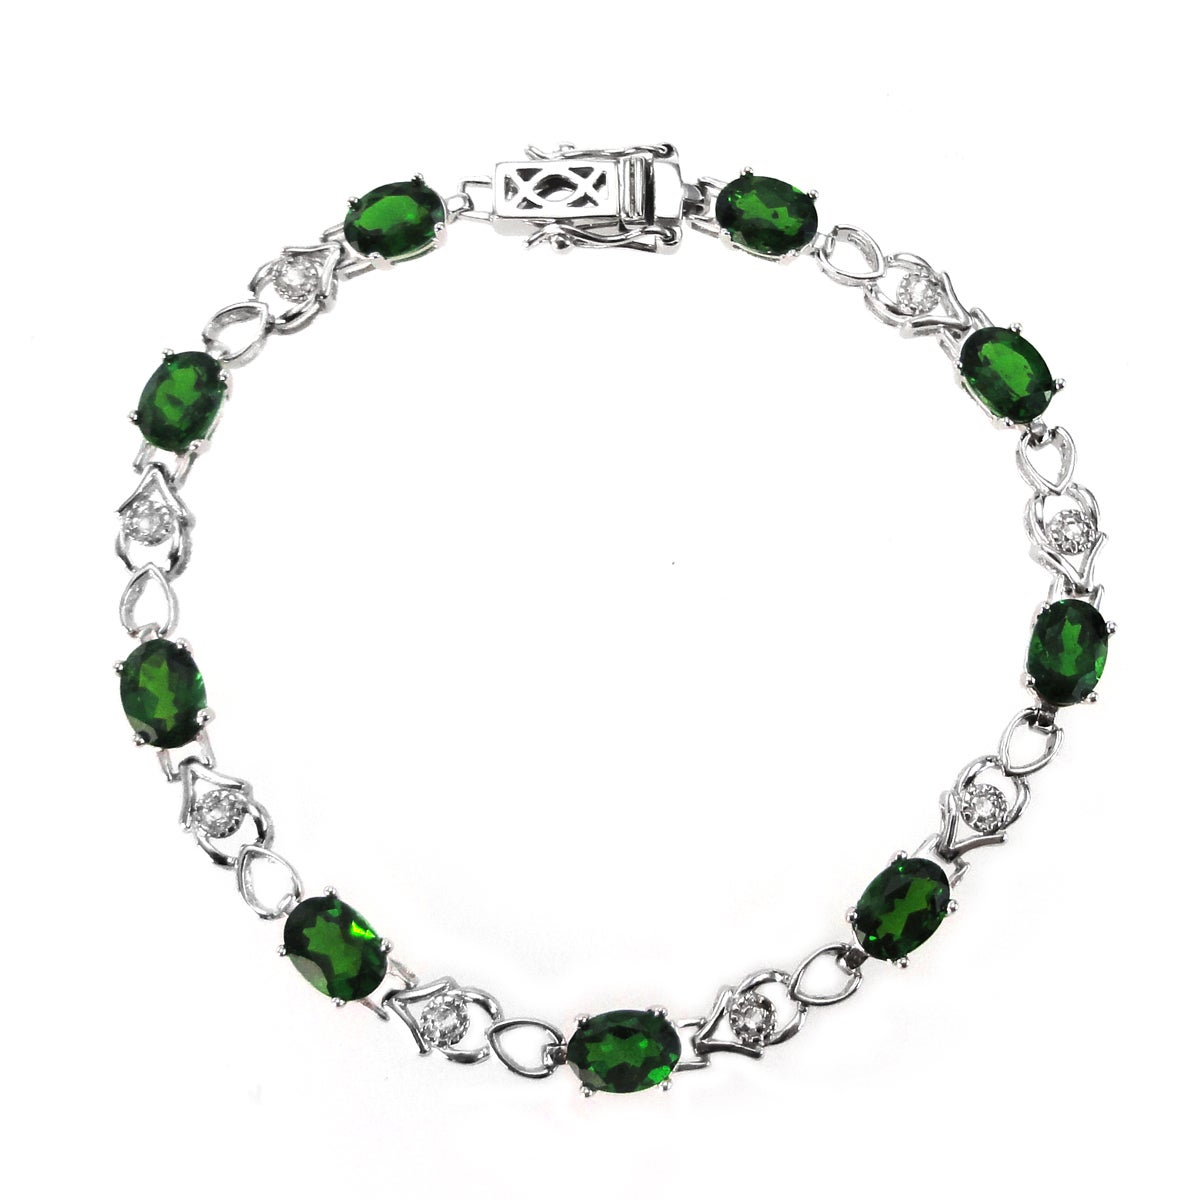 De Buman Sterling Silver Chrome Diopside and White Topaz Bracelet